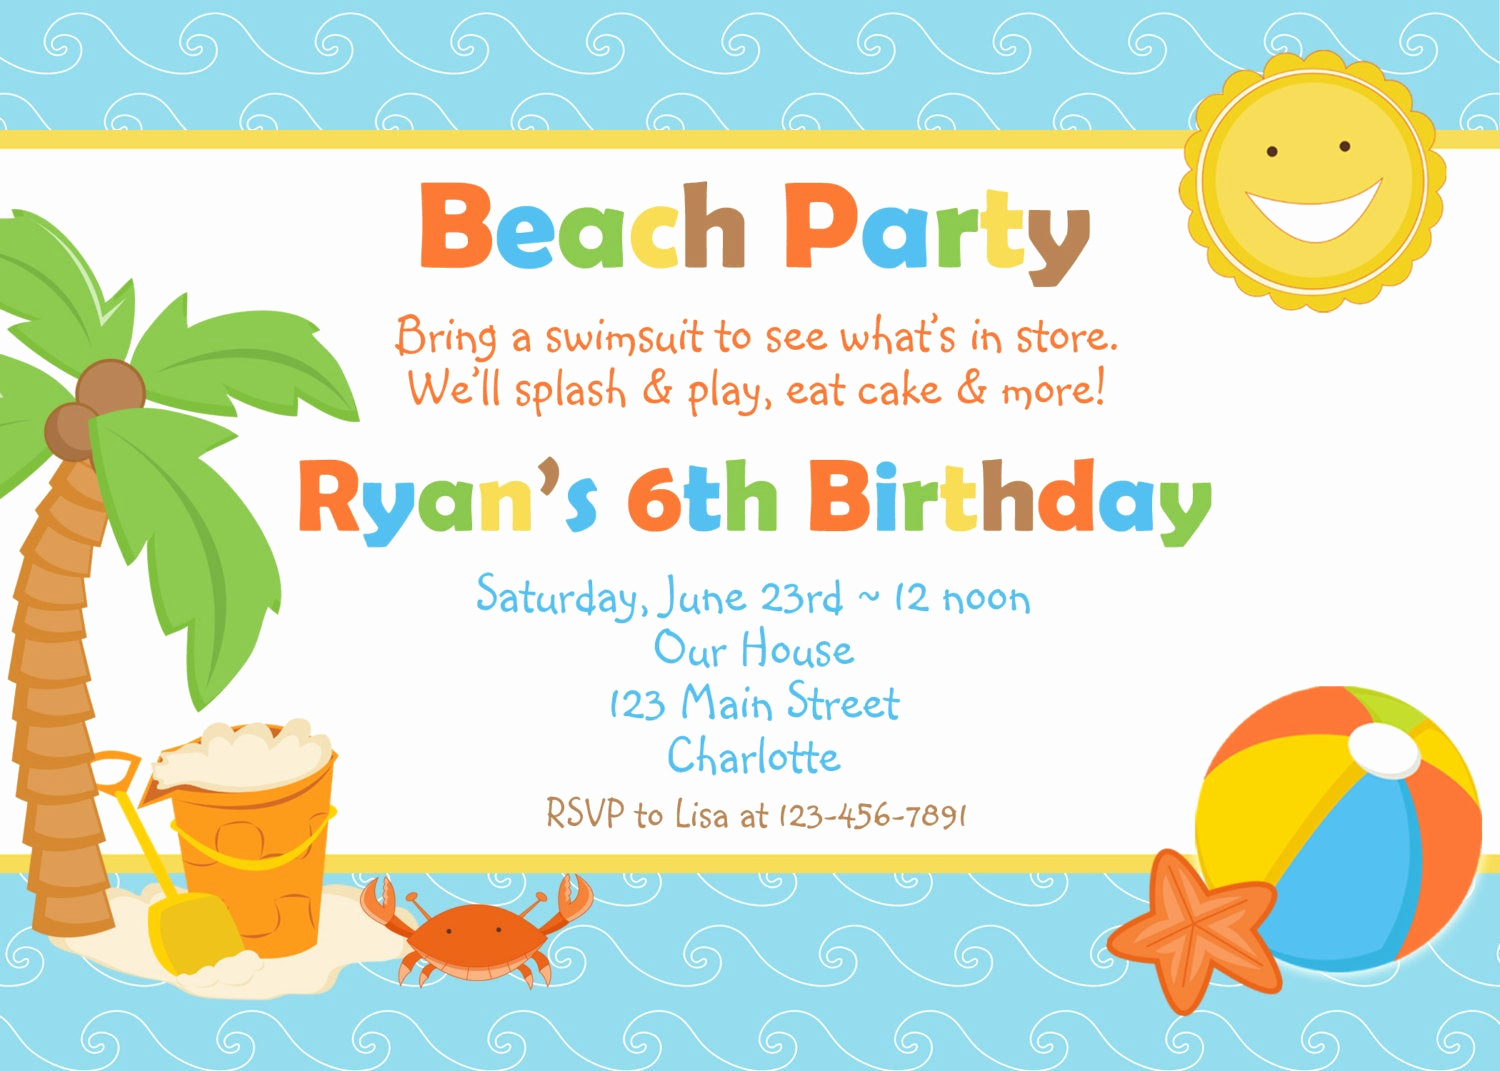 Beach Party Invitation Template New Beach Party Birthday Invitation Pool Party by